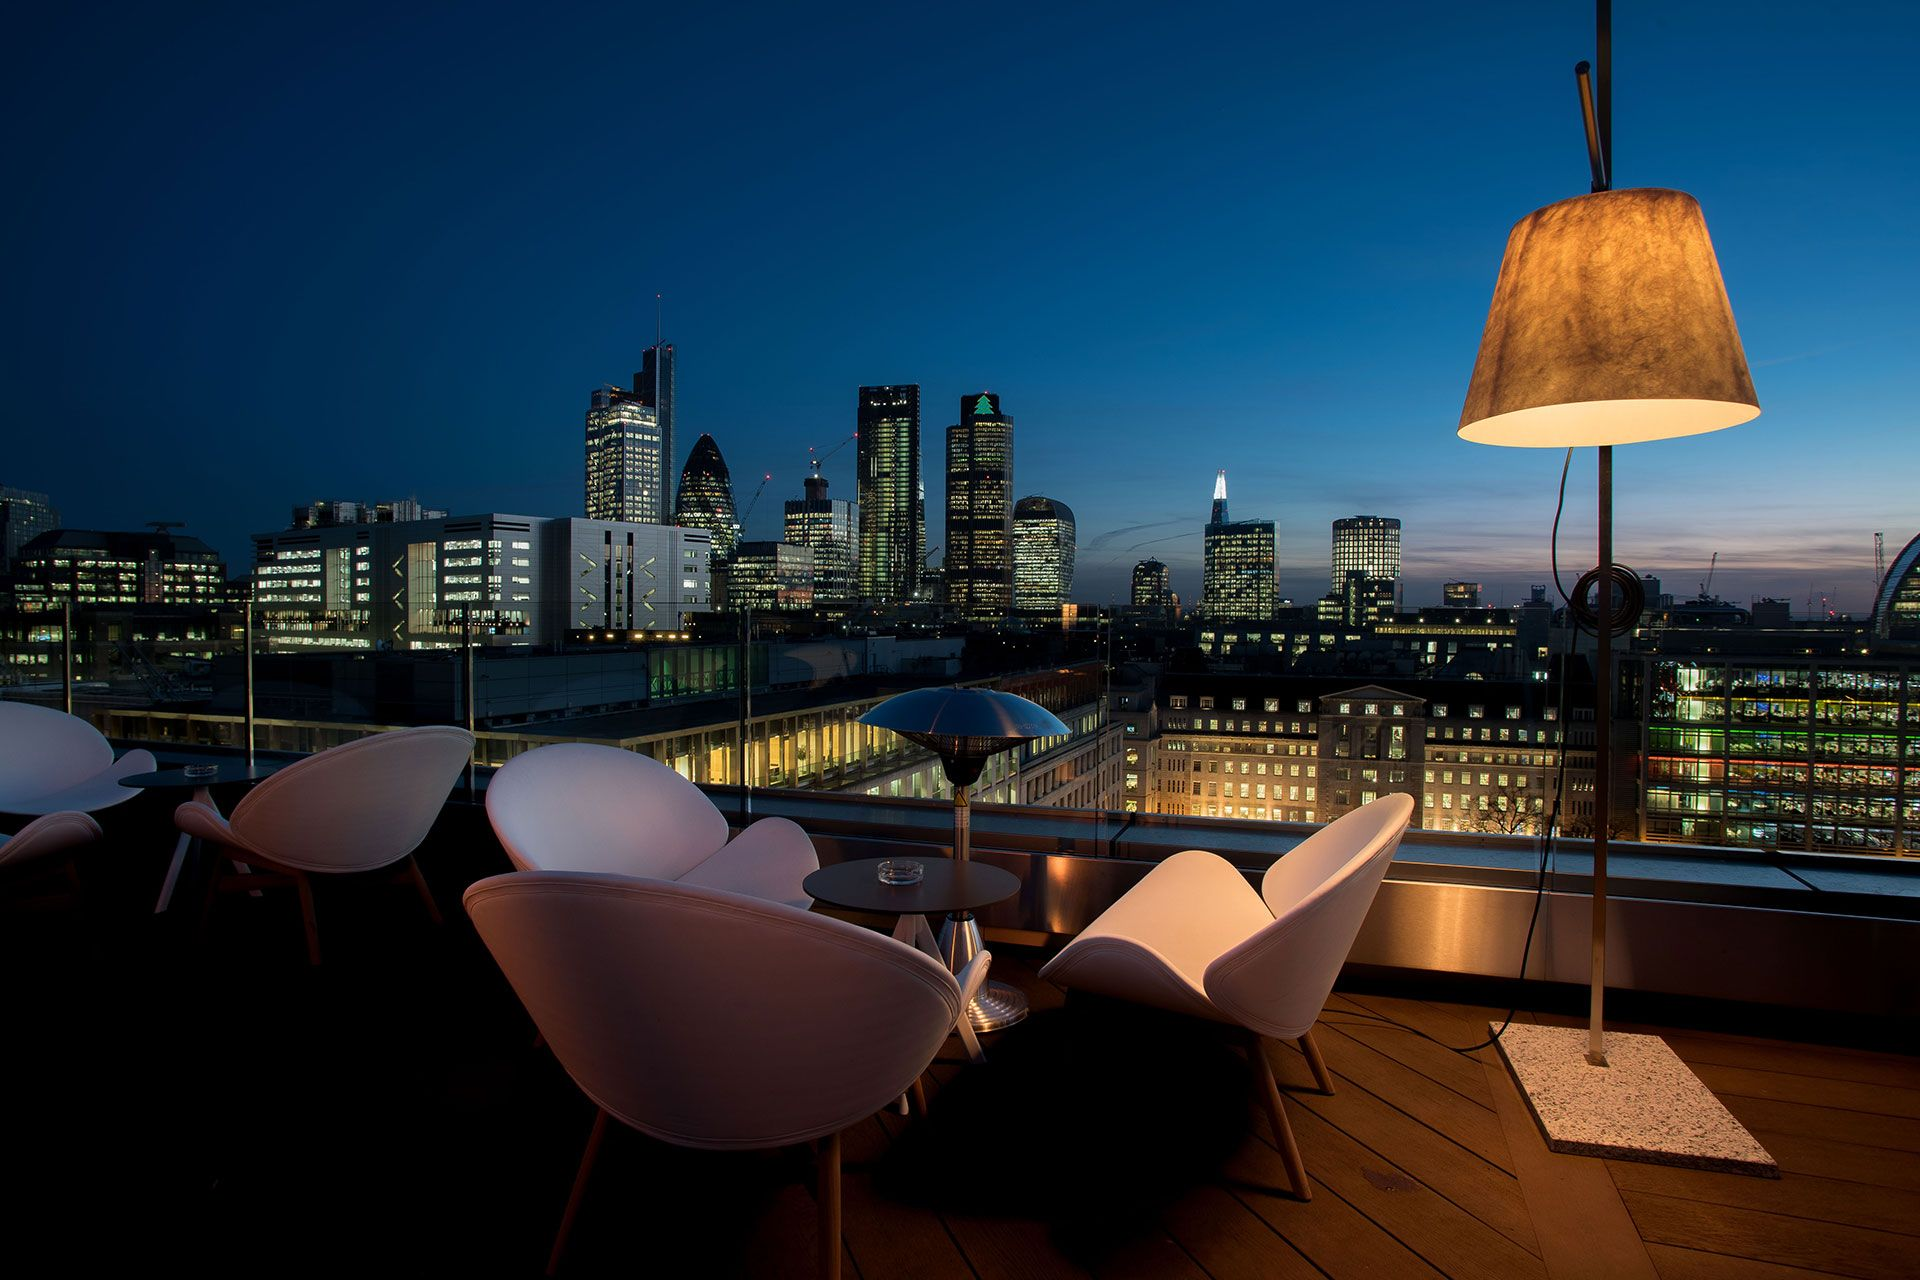 Soak Up The Sun In The Cities Best Roof Terraces Gardens And Outdoor Dining Areas From Shoreditch To Ch London Rooftop Bar Hotel Rooftop Bar Best Rooftop Bars